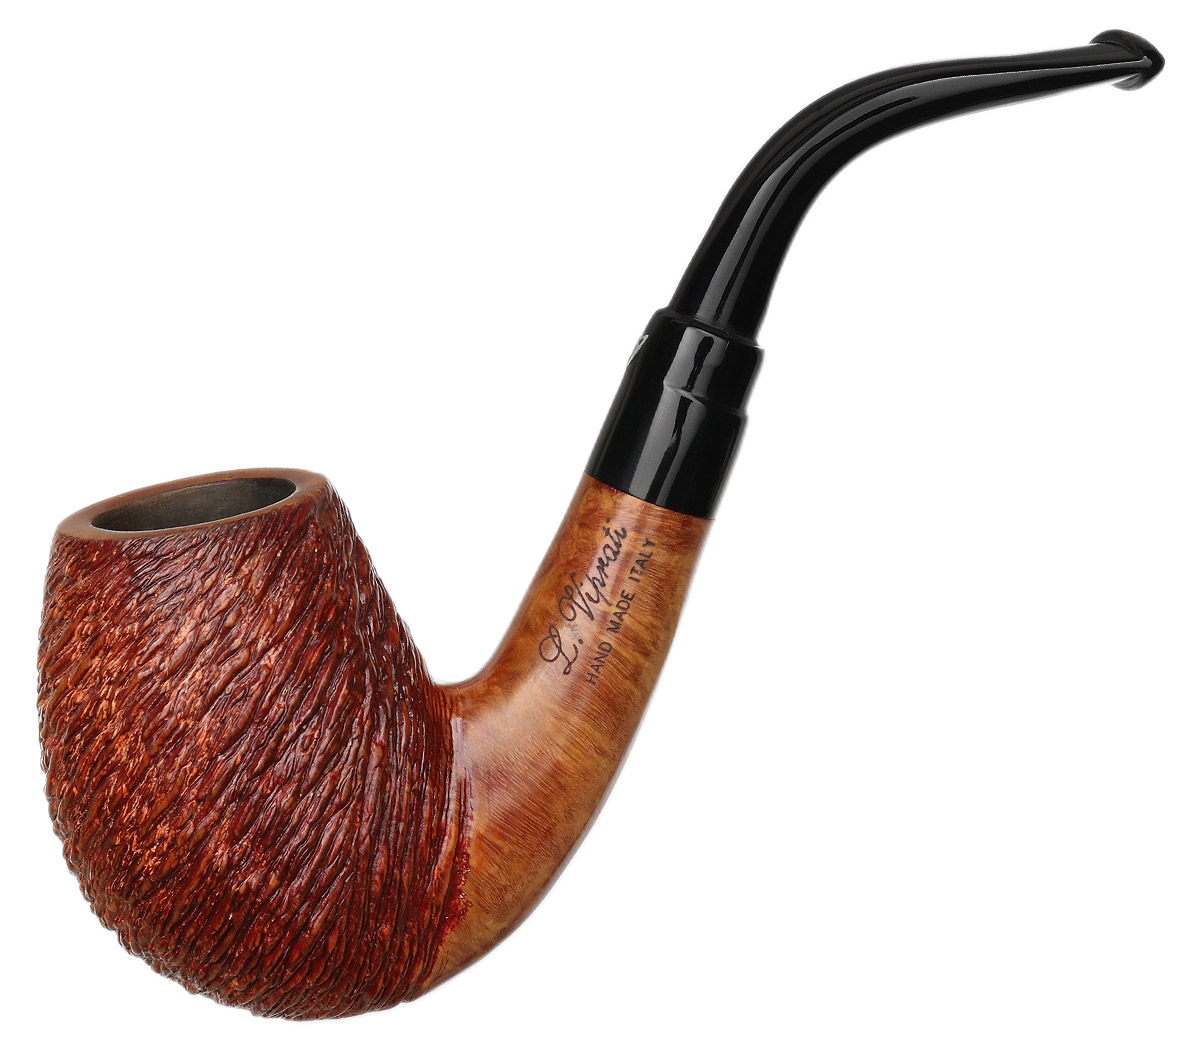 Italian Estate Luigi Viprati Partially Rusticated Bent Egg